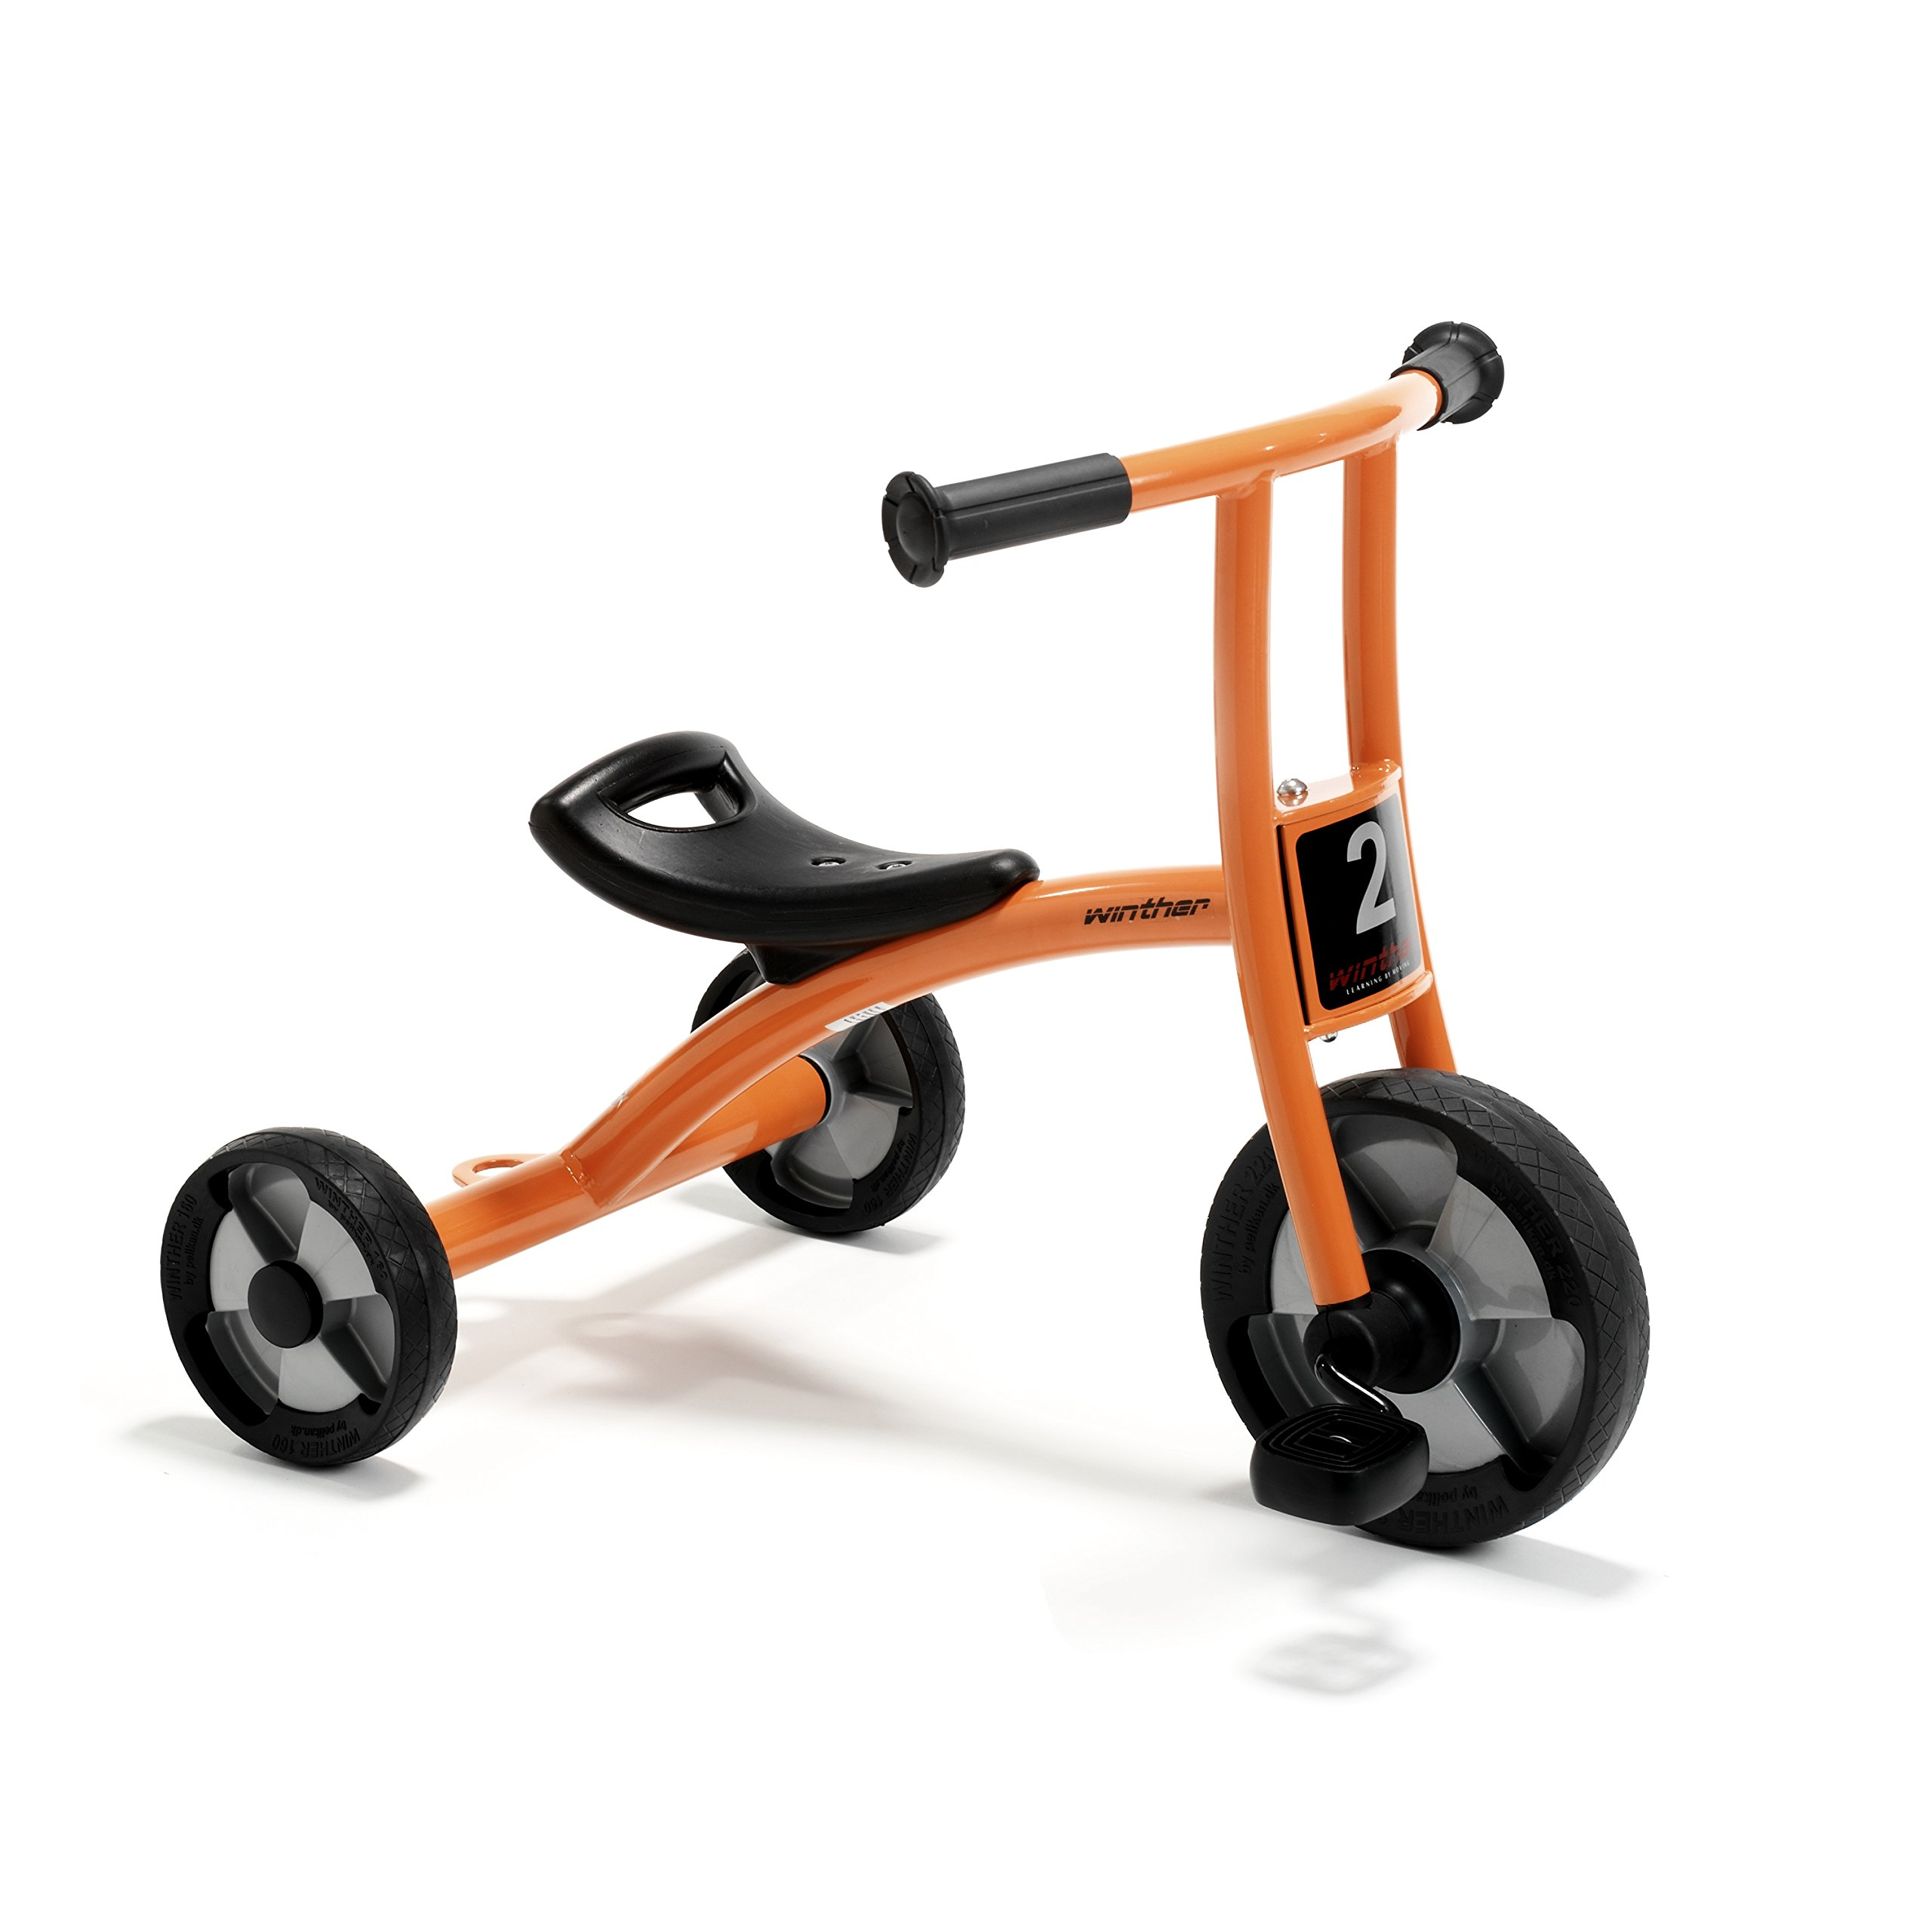 Winther WIN550 Circleline Tricycle, Small Grade Kindergarten to 1, 10.63'' Height, 18.5'' Wide, 24.41'' Length